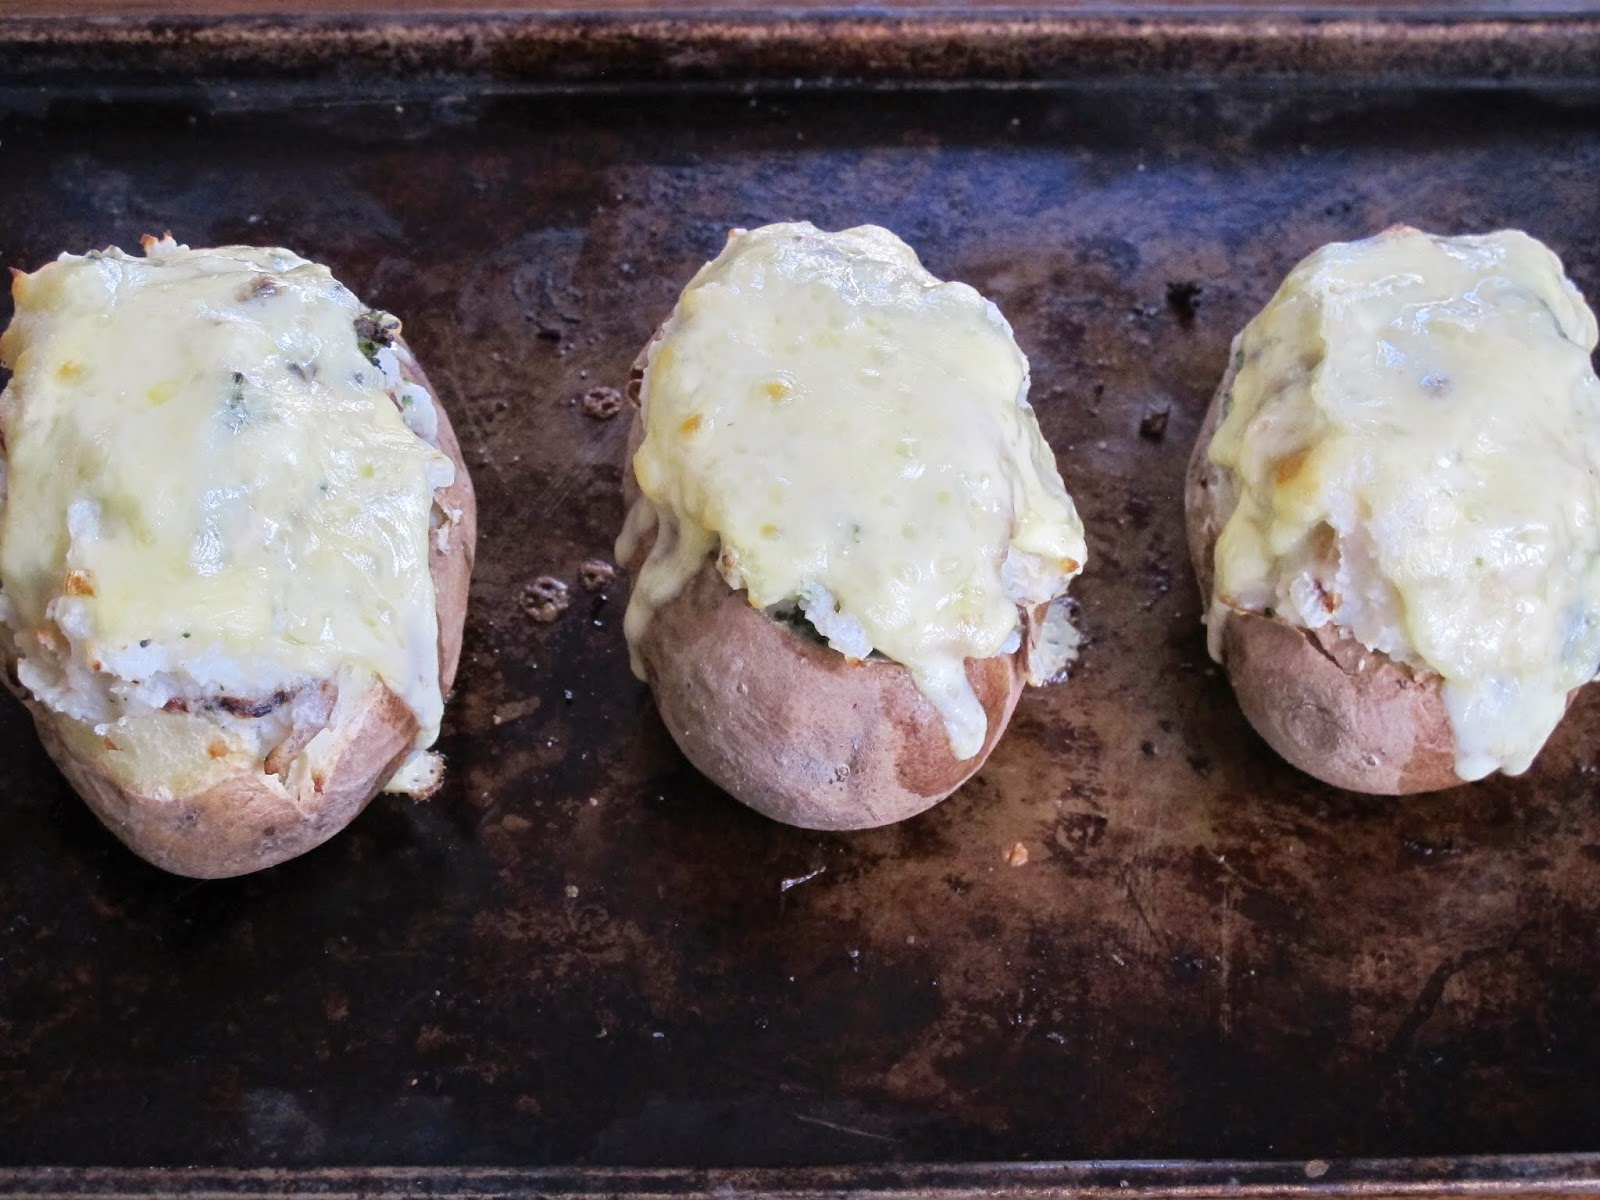 Chicken and Broccoli Twice Baked Stuffed Potatoes